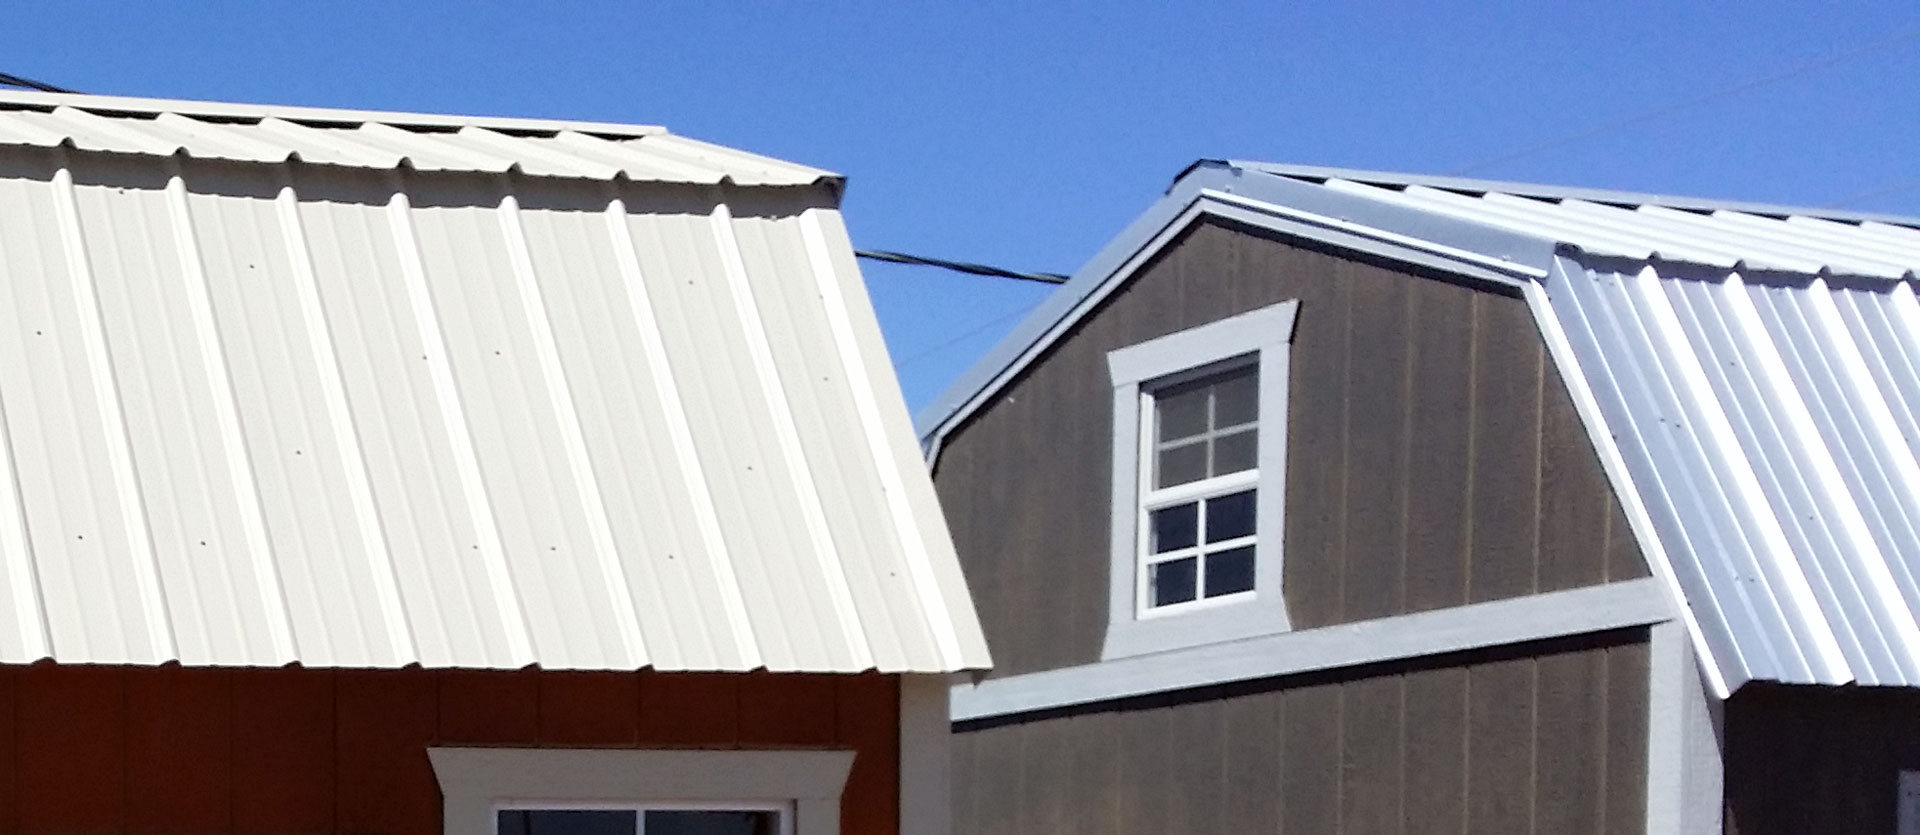 Gambrel Roof Pictures How To Install A Metal Roof Instead Of Shingles On Your Shed